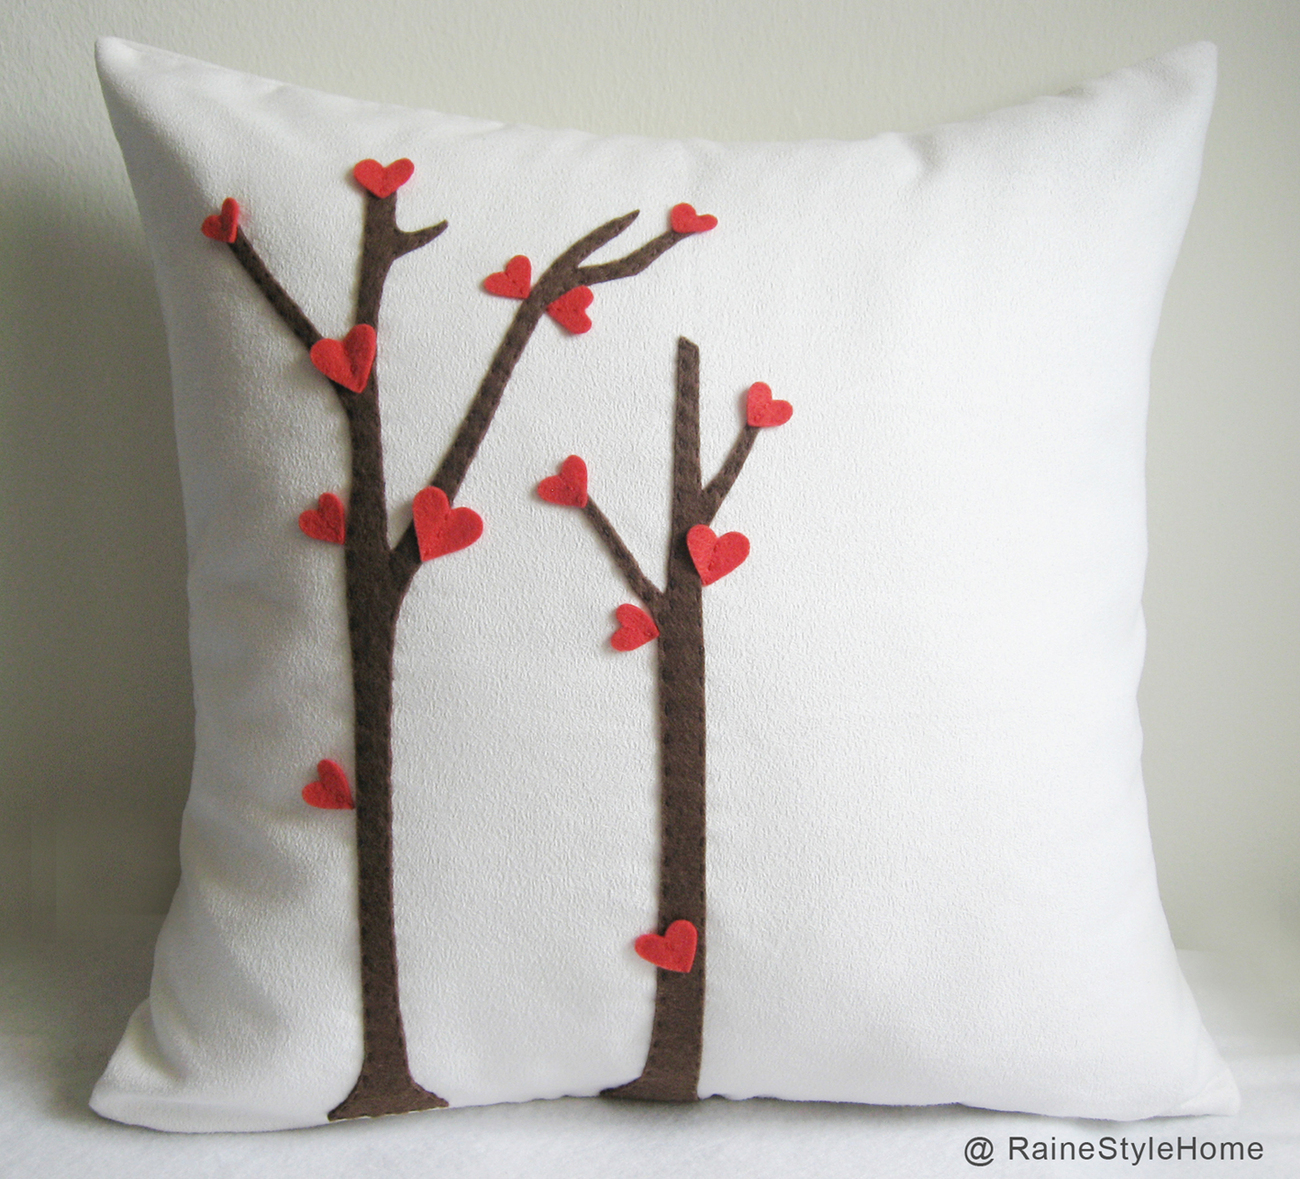 Primary image for Valentine Gift. Love Trees Blossom White Pillow Cover. Decorative Cushion